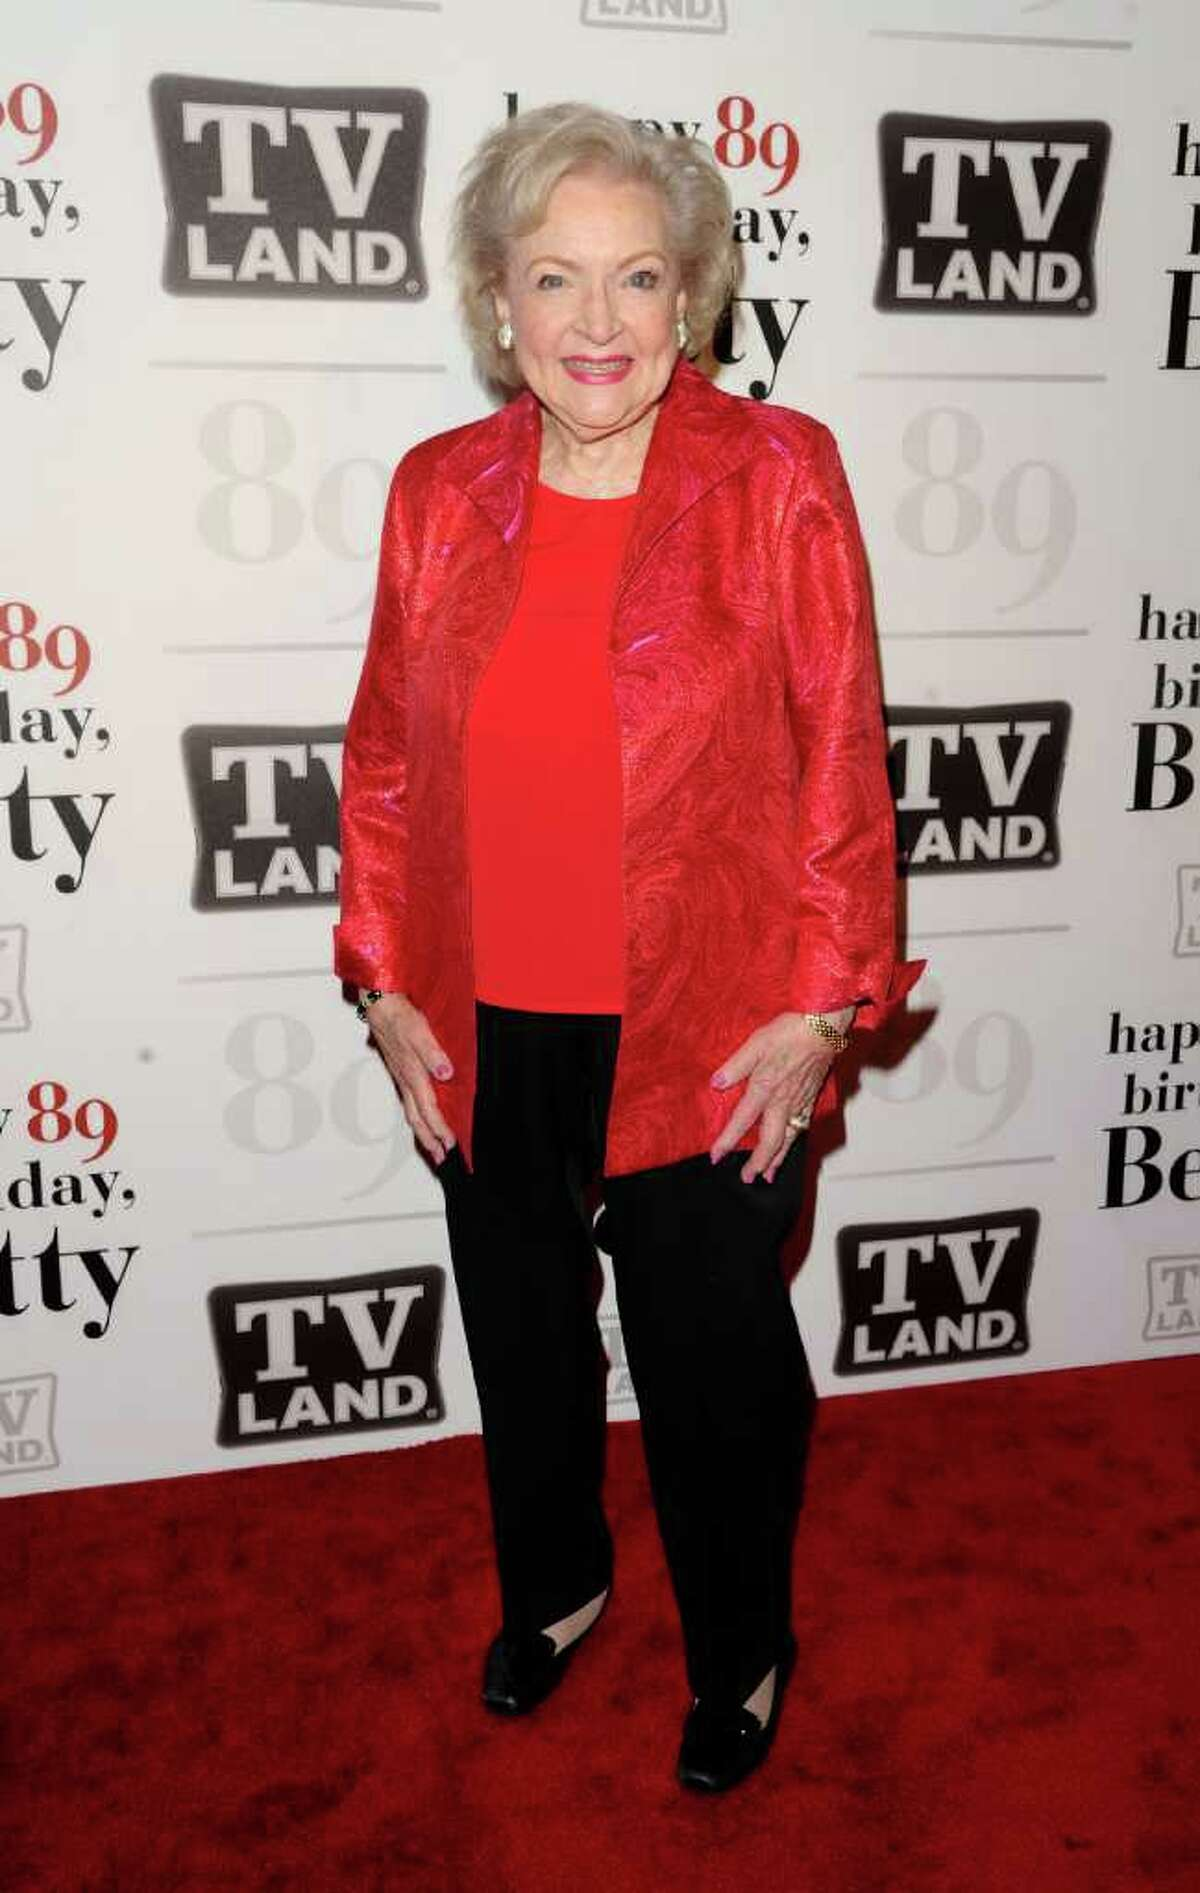 Actress Betty White attends her 89th Birthday celebration hosted by TV Land, in New York, on Tuesday, Jan. 18, 2011.